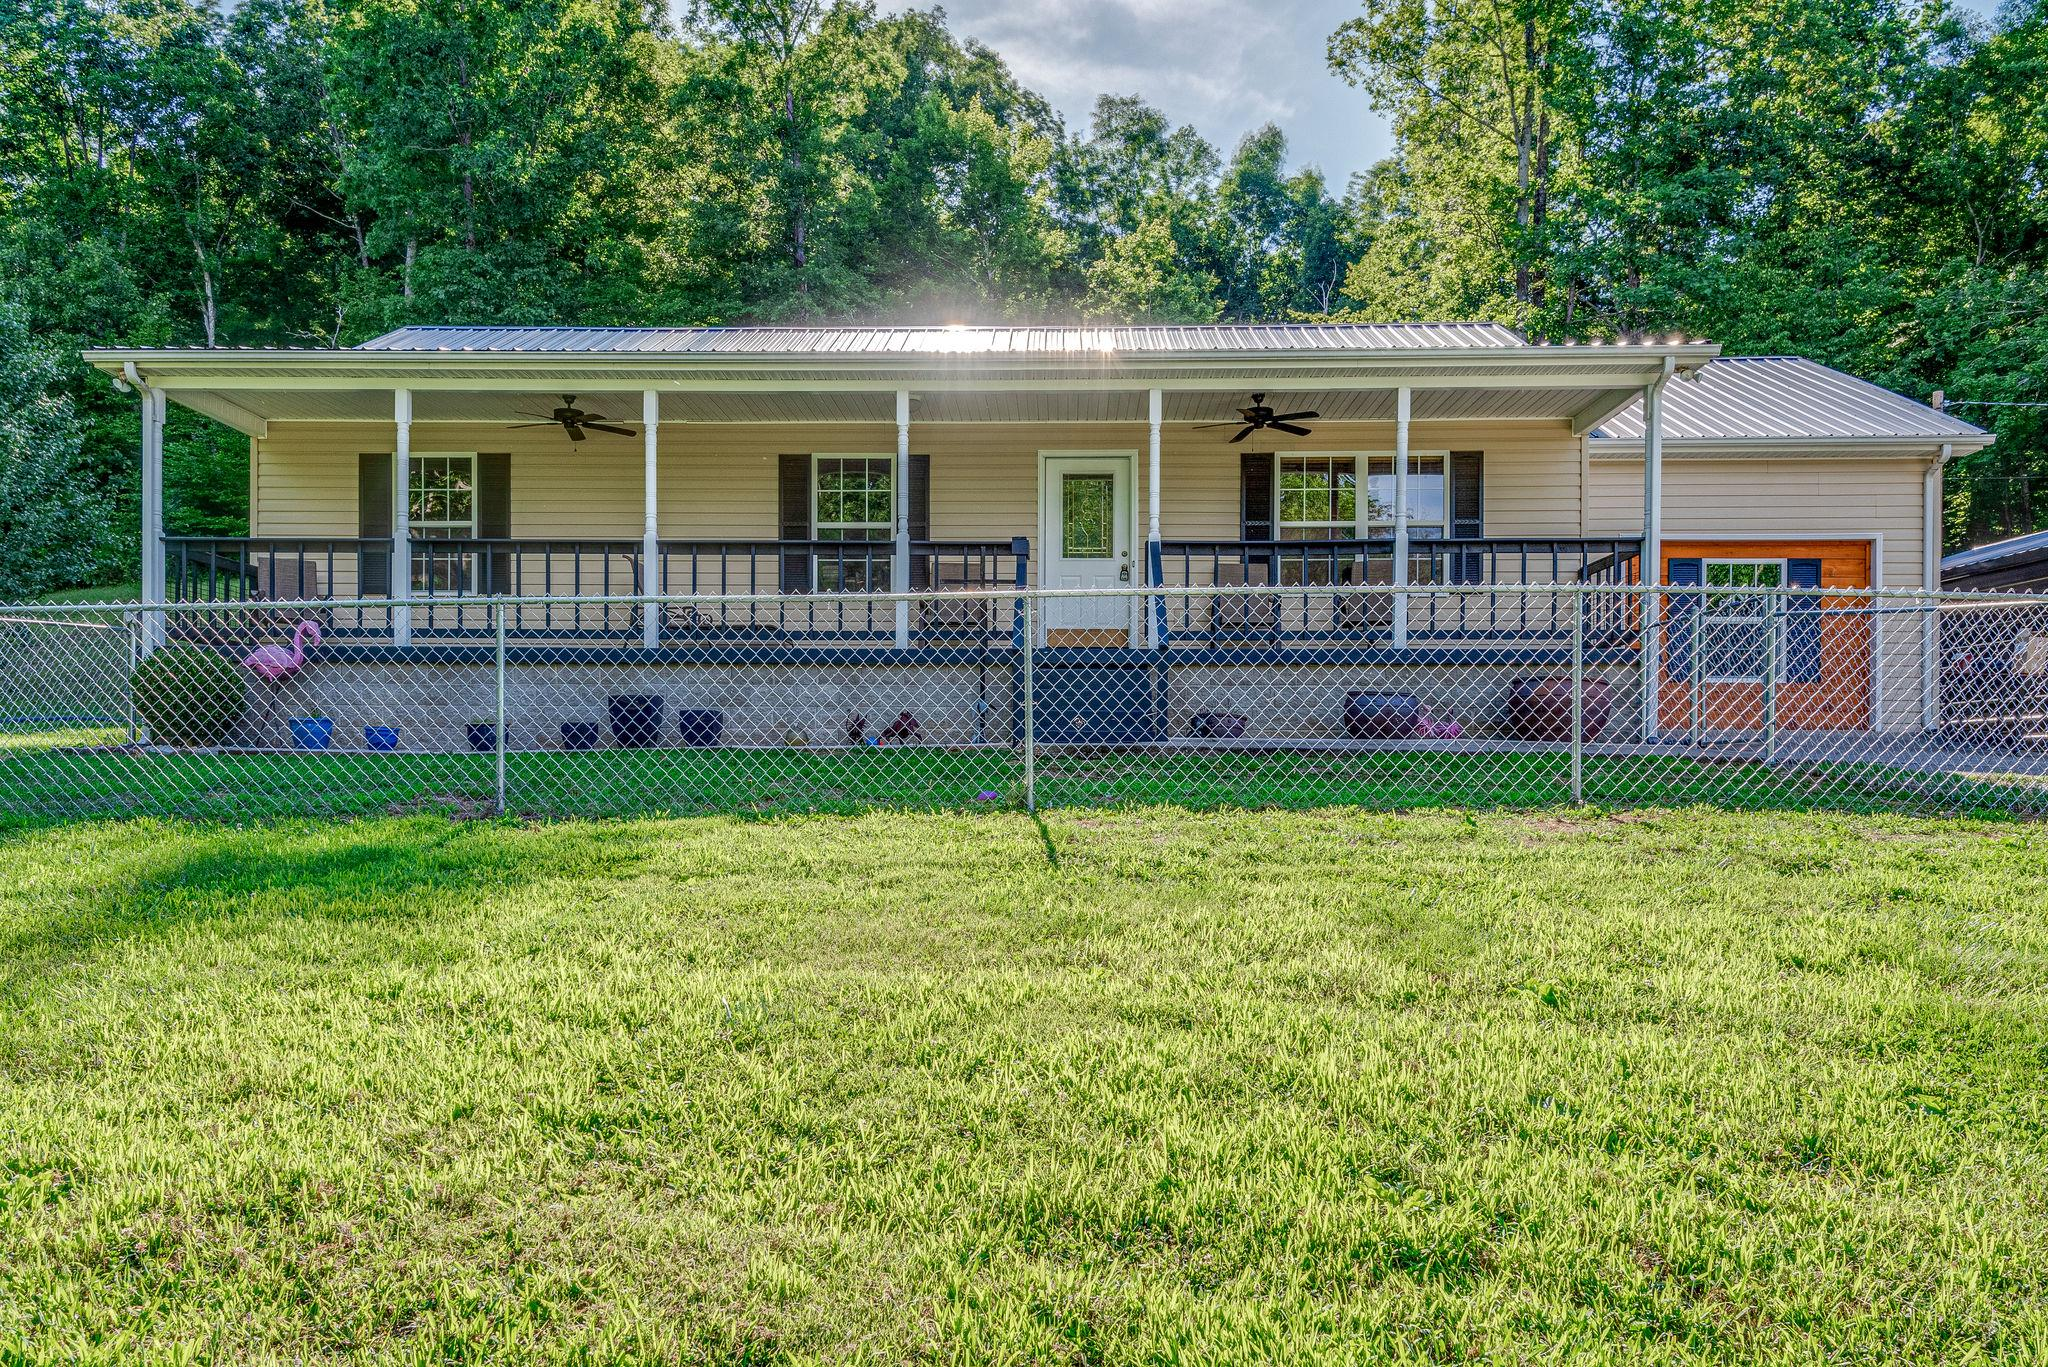 6671 Bold Springs Rd, MC EWEN, TN 37101 - MC EWEN, TN real estate listing